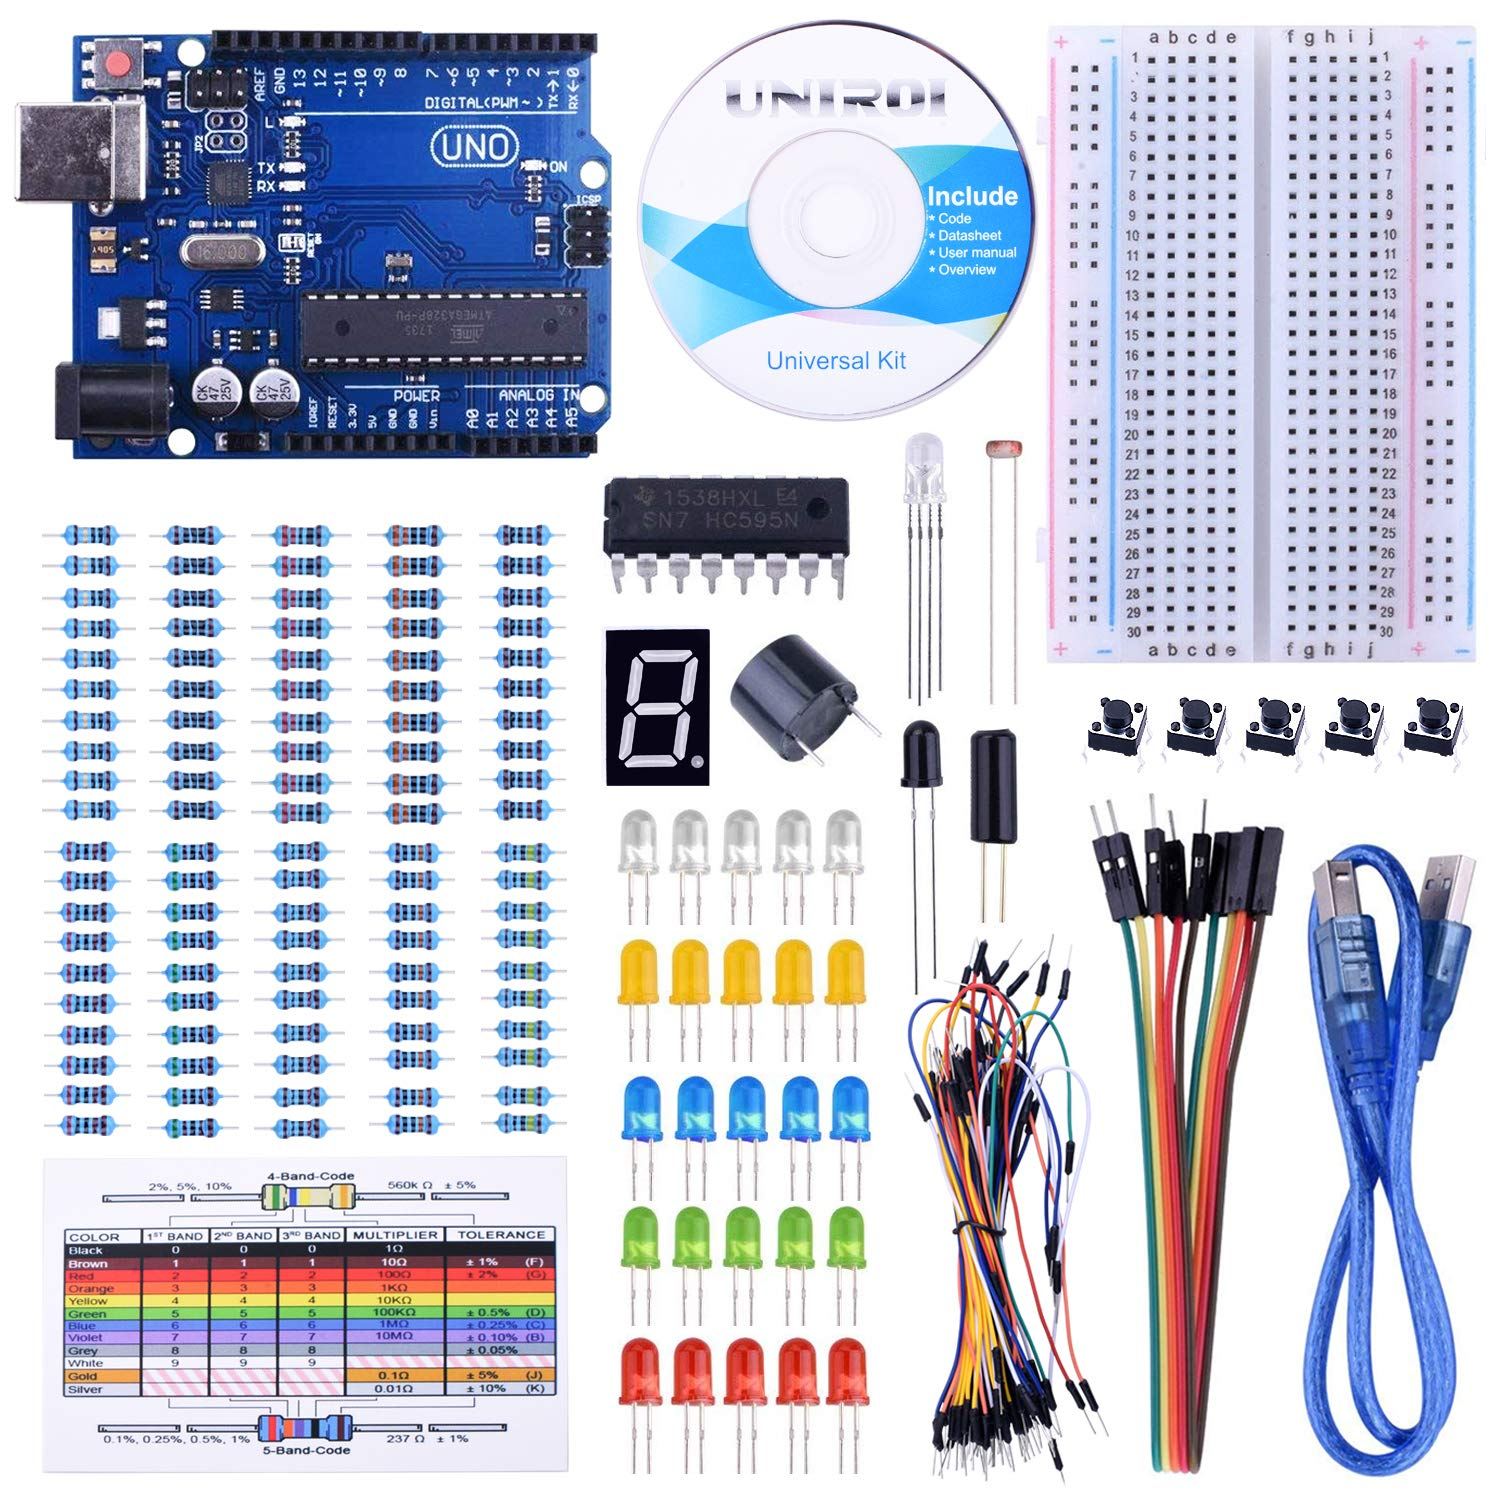 UNIROI 14 in 1 Breadboard Kit with RAB Holder,830 Points Breadboard,DuPont Cable,Jumper Wires for Arduino Uno R3, Mega 2560 & Raspberry Pi 3 Model B, 2 Model B,1 Model B+ RPI Zero W and Zero UA032 (14 in 1 breadboard kit with RAB holder)